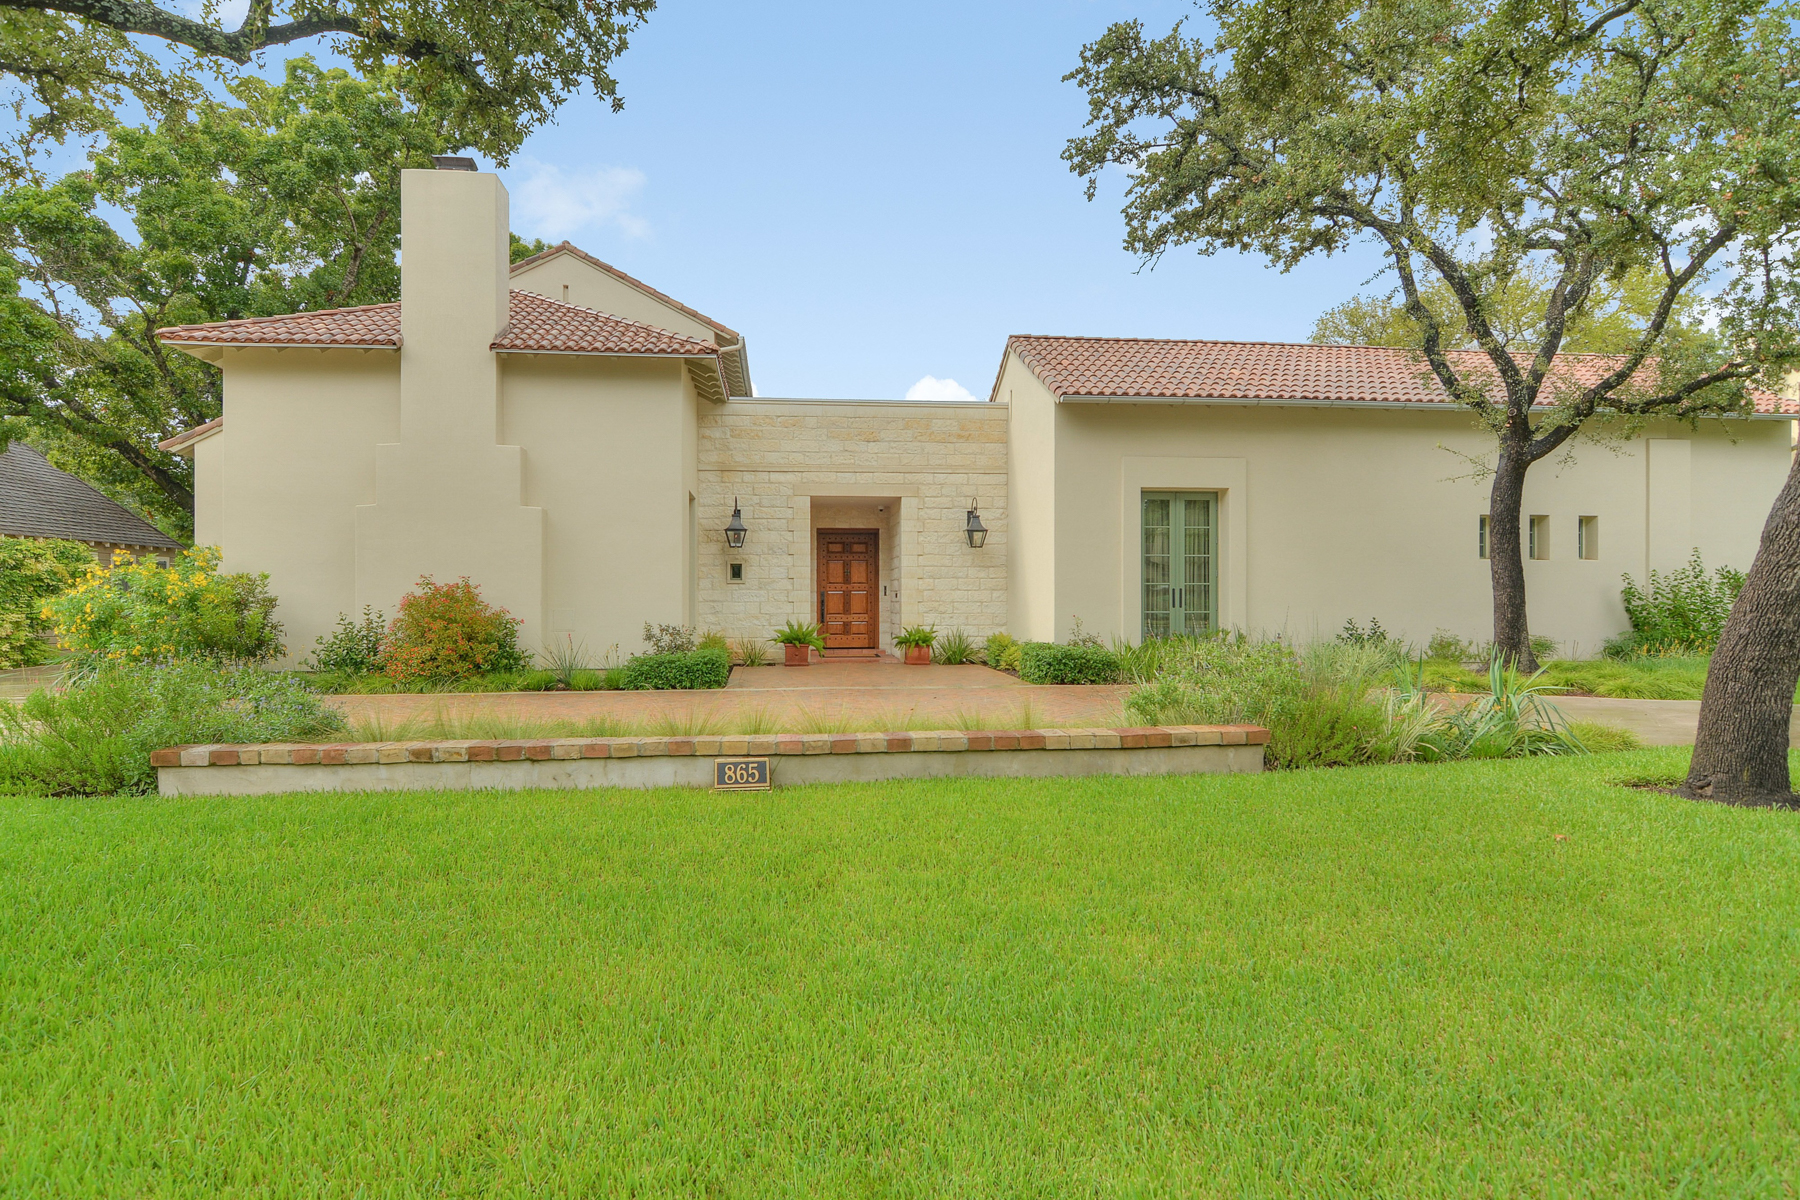 Casa Unifamiliar por un Venta en Gorgeous Home in Alamo Heights 865 Estes Ave San Antonio, Texas 78209 Estados Unidos